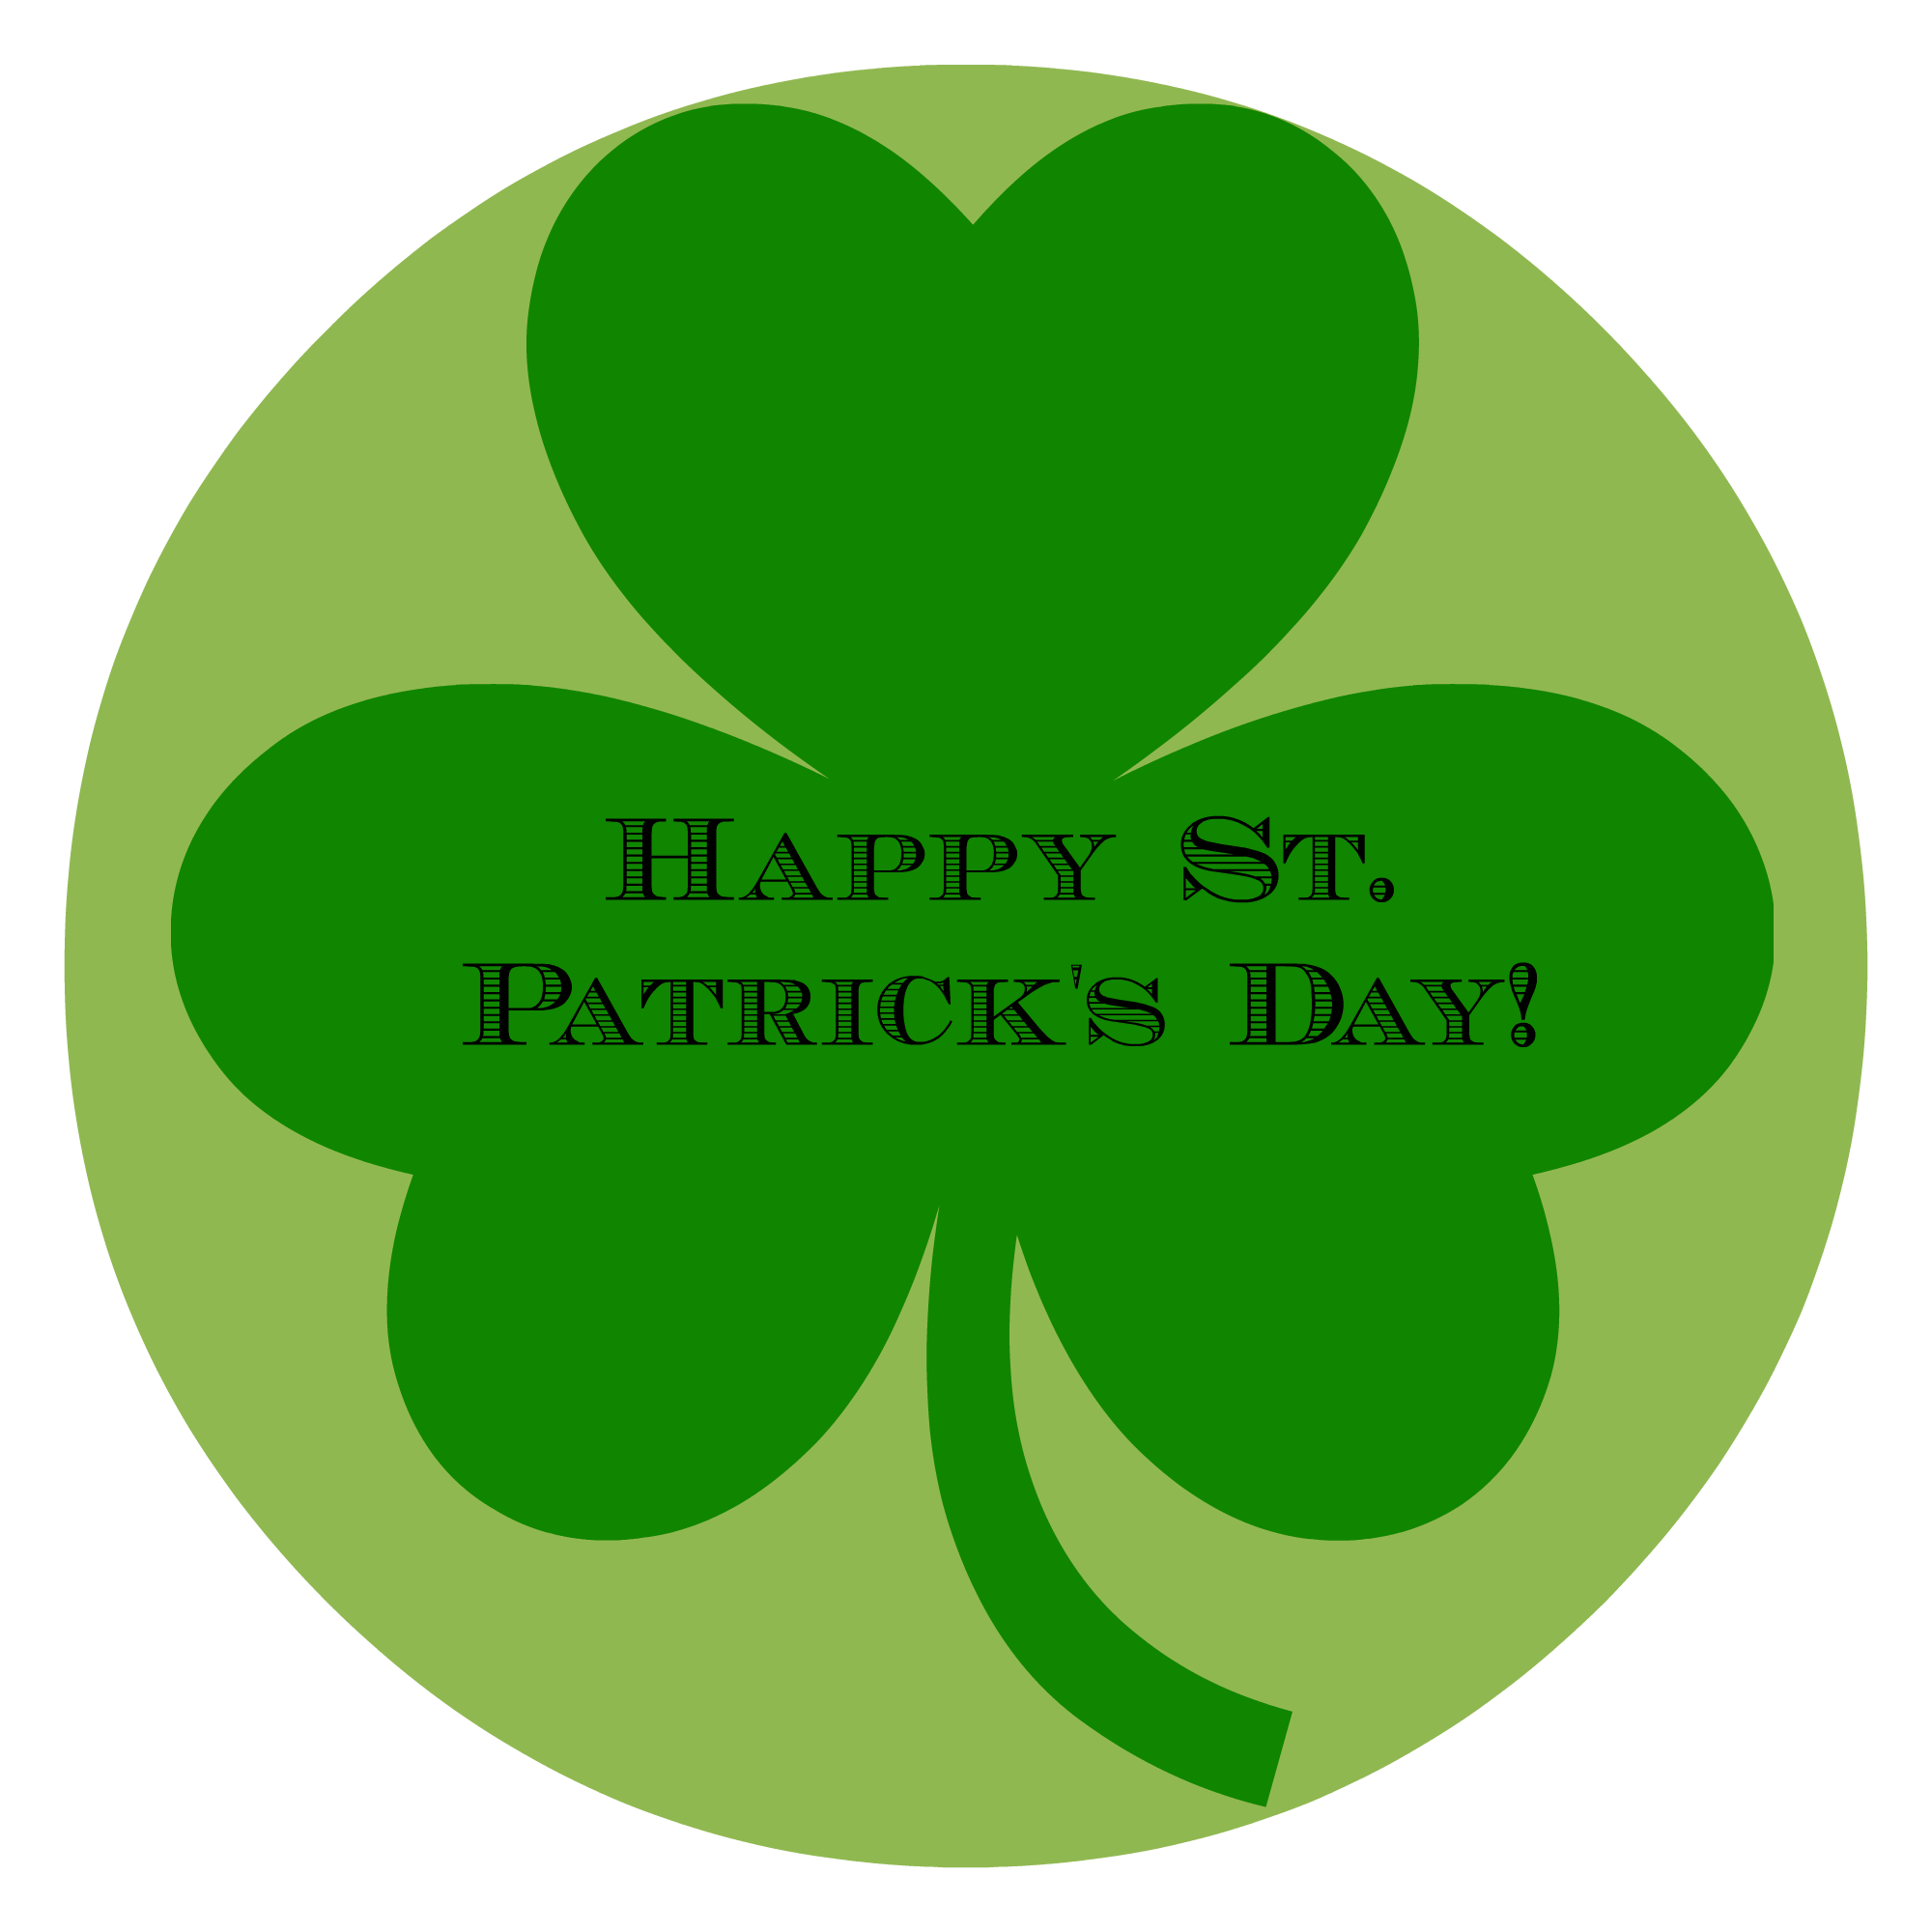 Happy Saint Patricku0027s Day 2017 Clover Leaf Picture